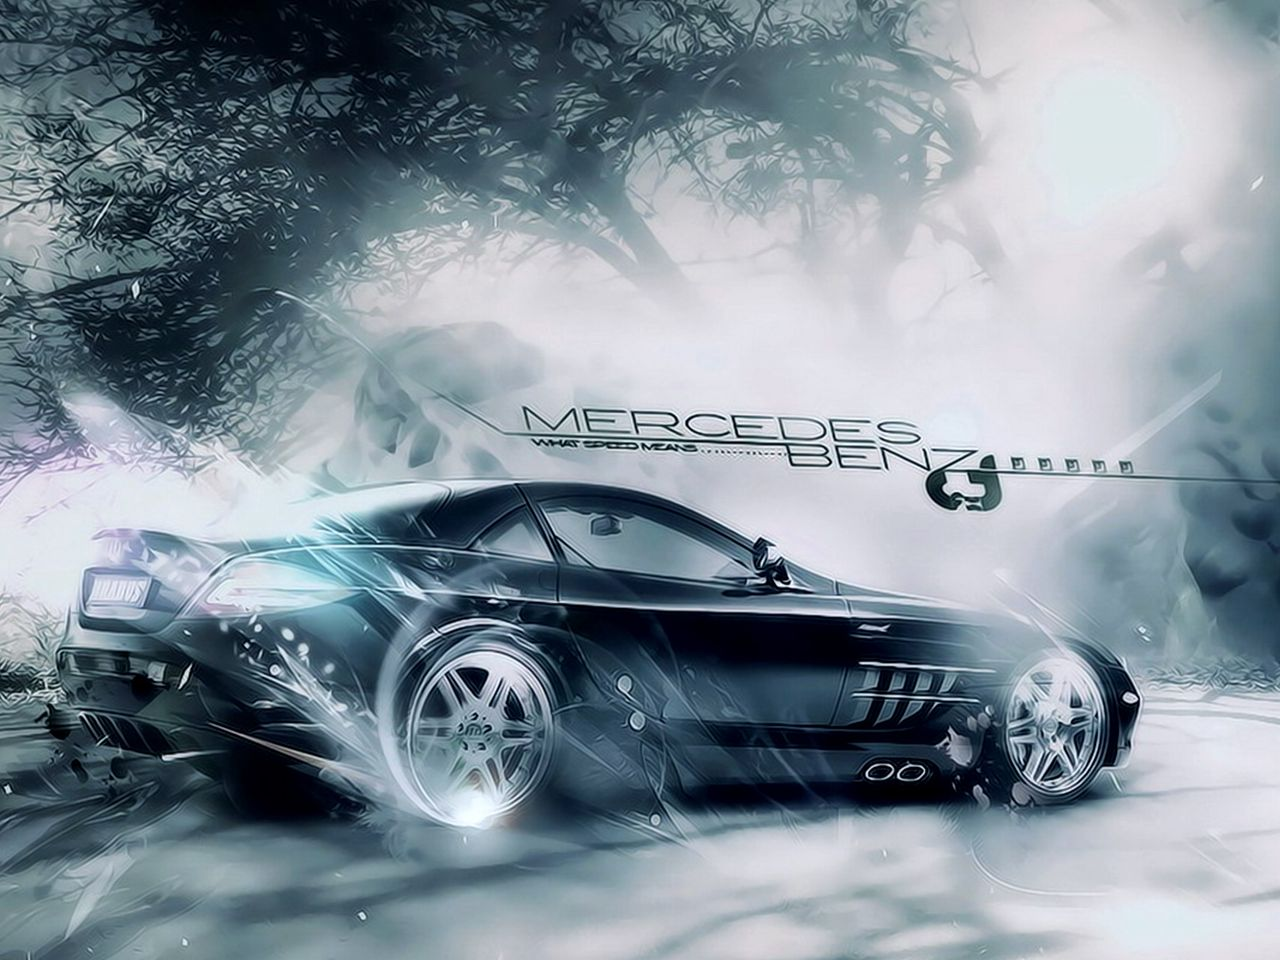 http://4.bp.blogspot.com/-vfItaxuJ0AM/UEnz987N_rI/AAAAAAAABuM/Y4U30RcM9W4/s1600/car-Mercedes-Benz-download-wallpapers.jpg